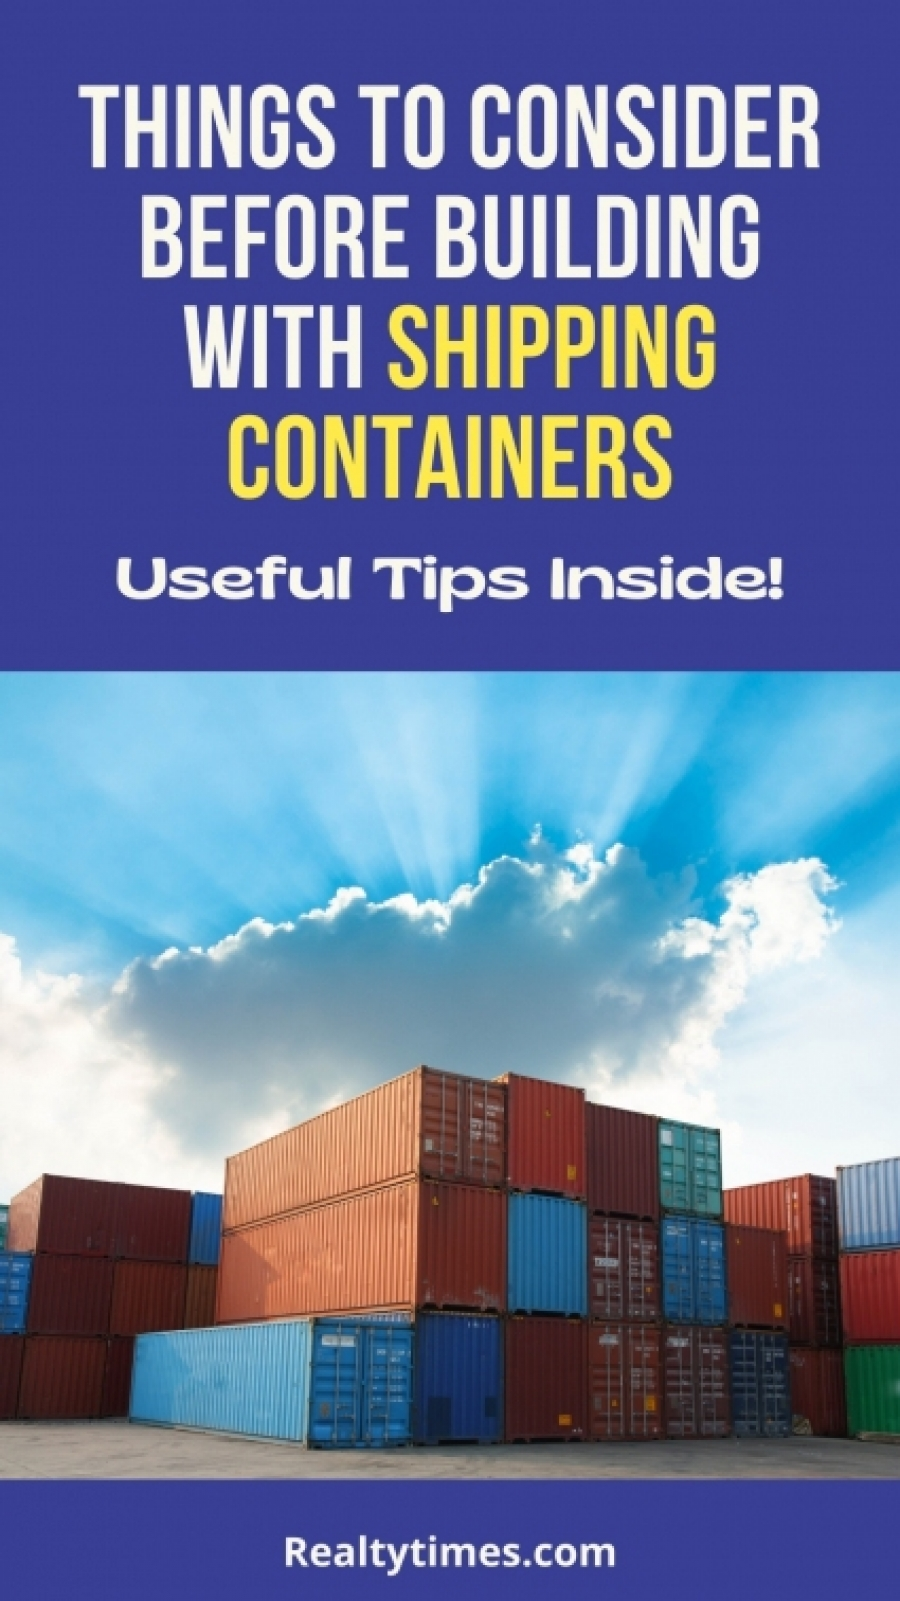 What to Know About Building With Shipping Containers